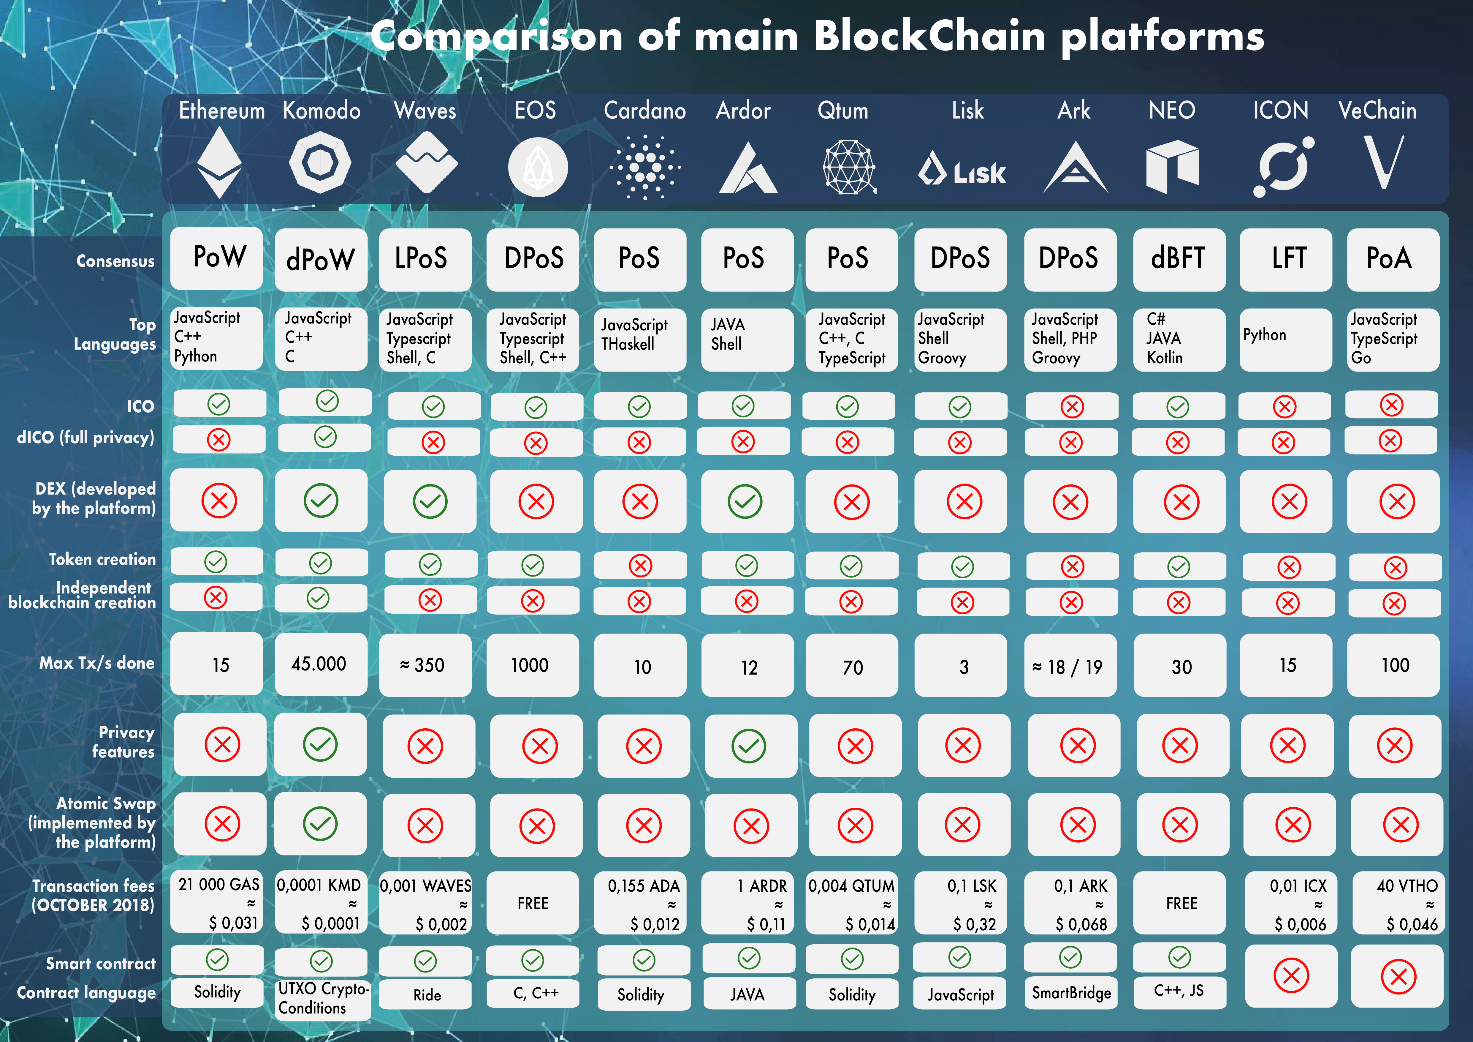 How to Implement Blockchain in the Supply Chain platforms